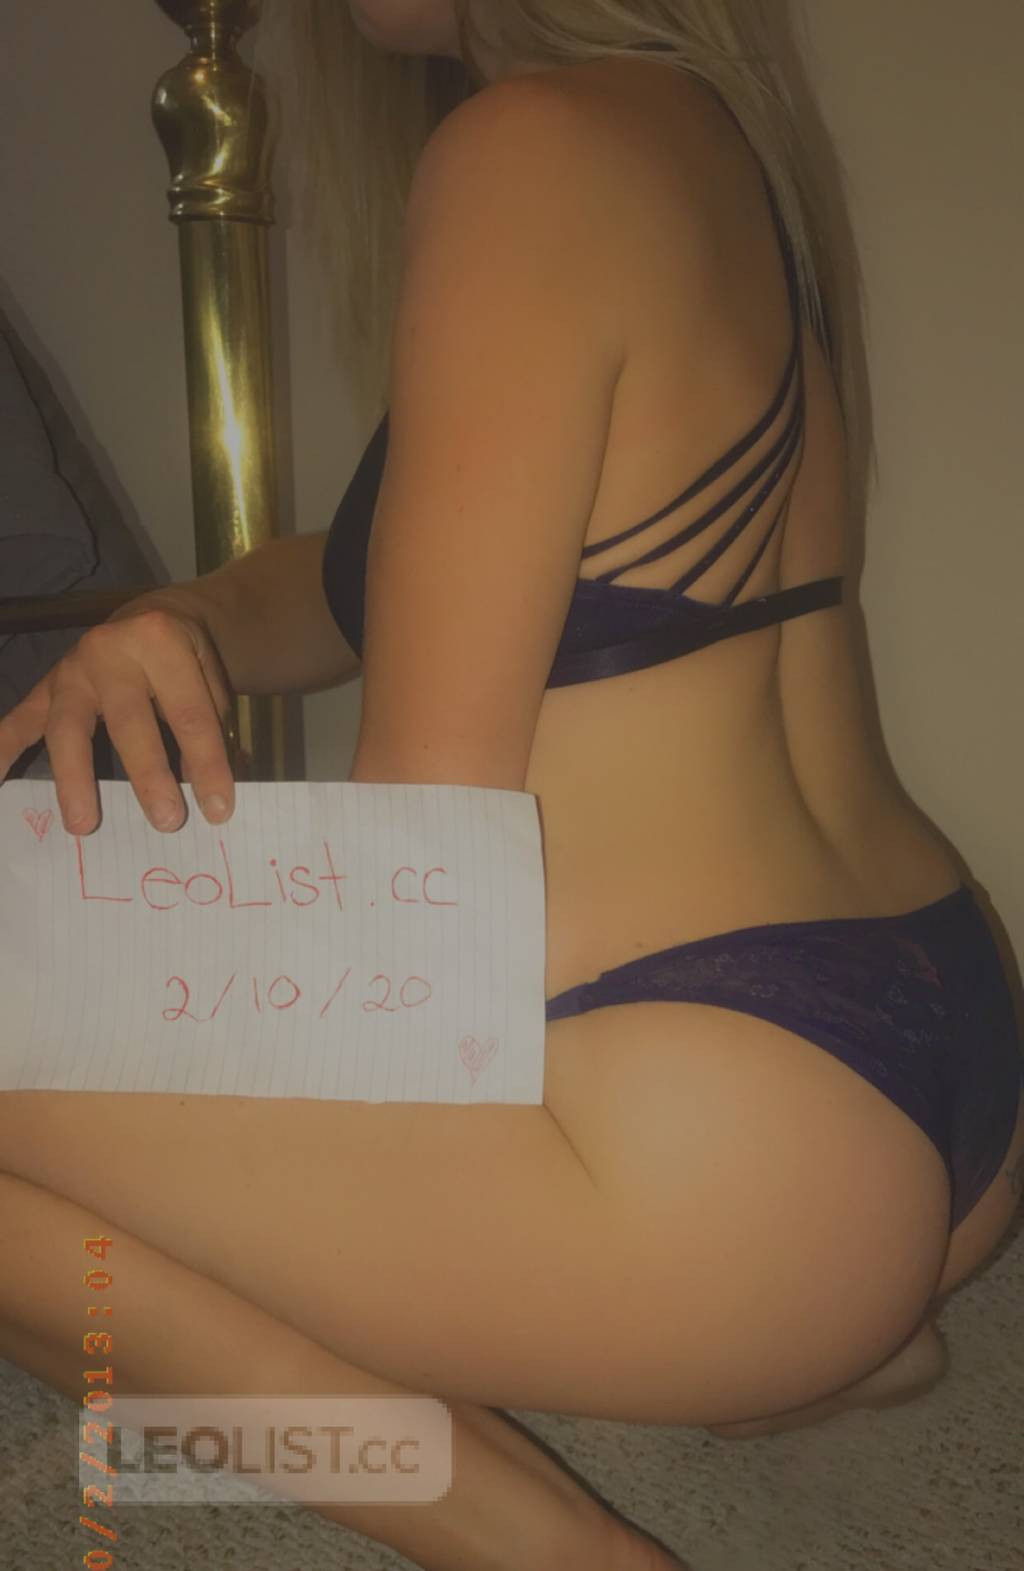 OUT CALL ONLY >>100%>>REAL>>VERIFIED>>HOT>>SEXY>>BLONDE                                                                                                     29                                             — Jorden                                                                  — Caucasian/White                                         — Calgary